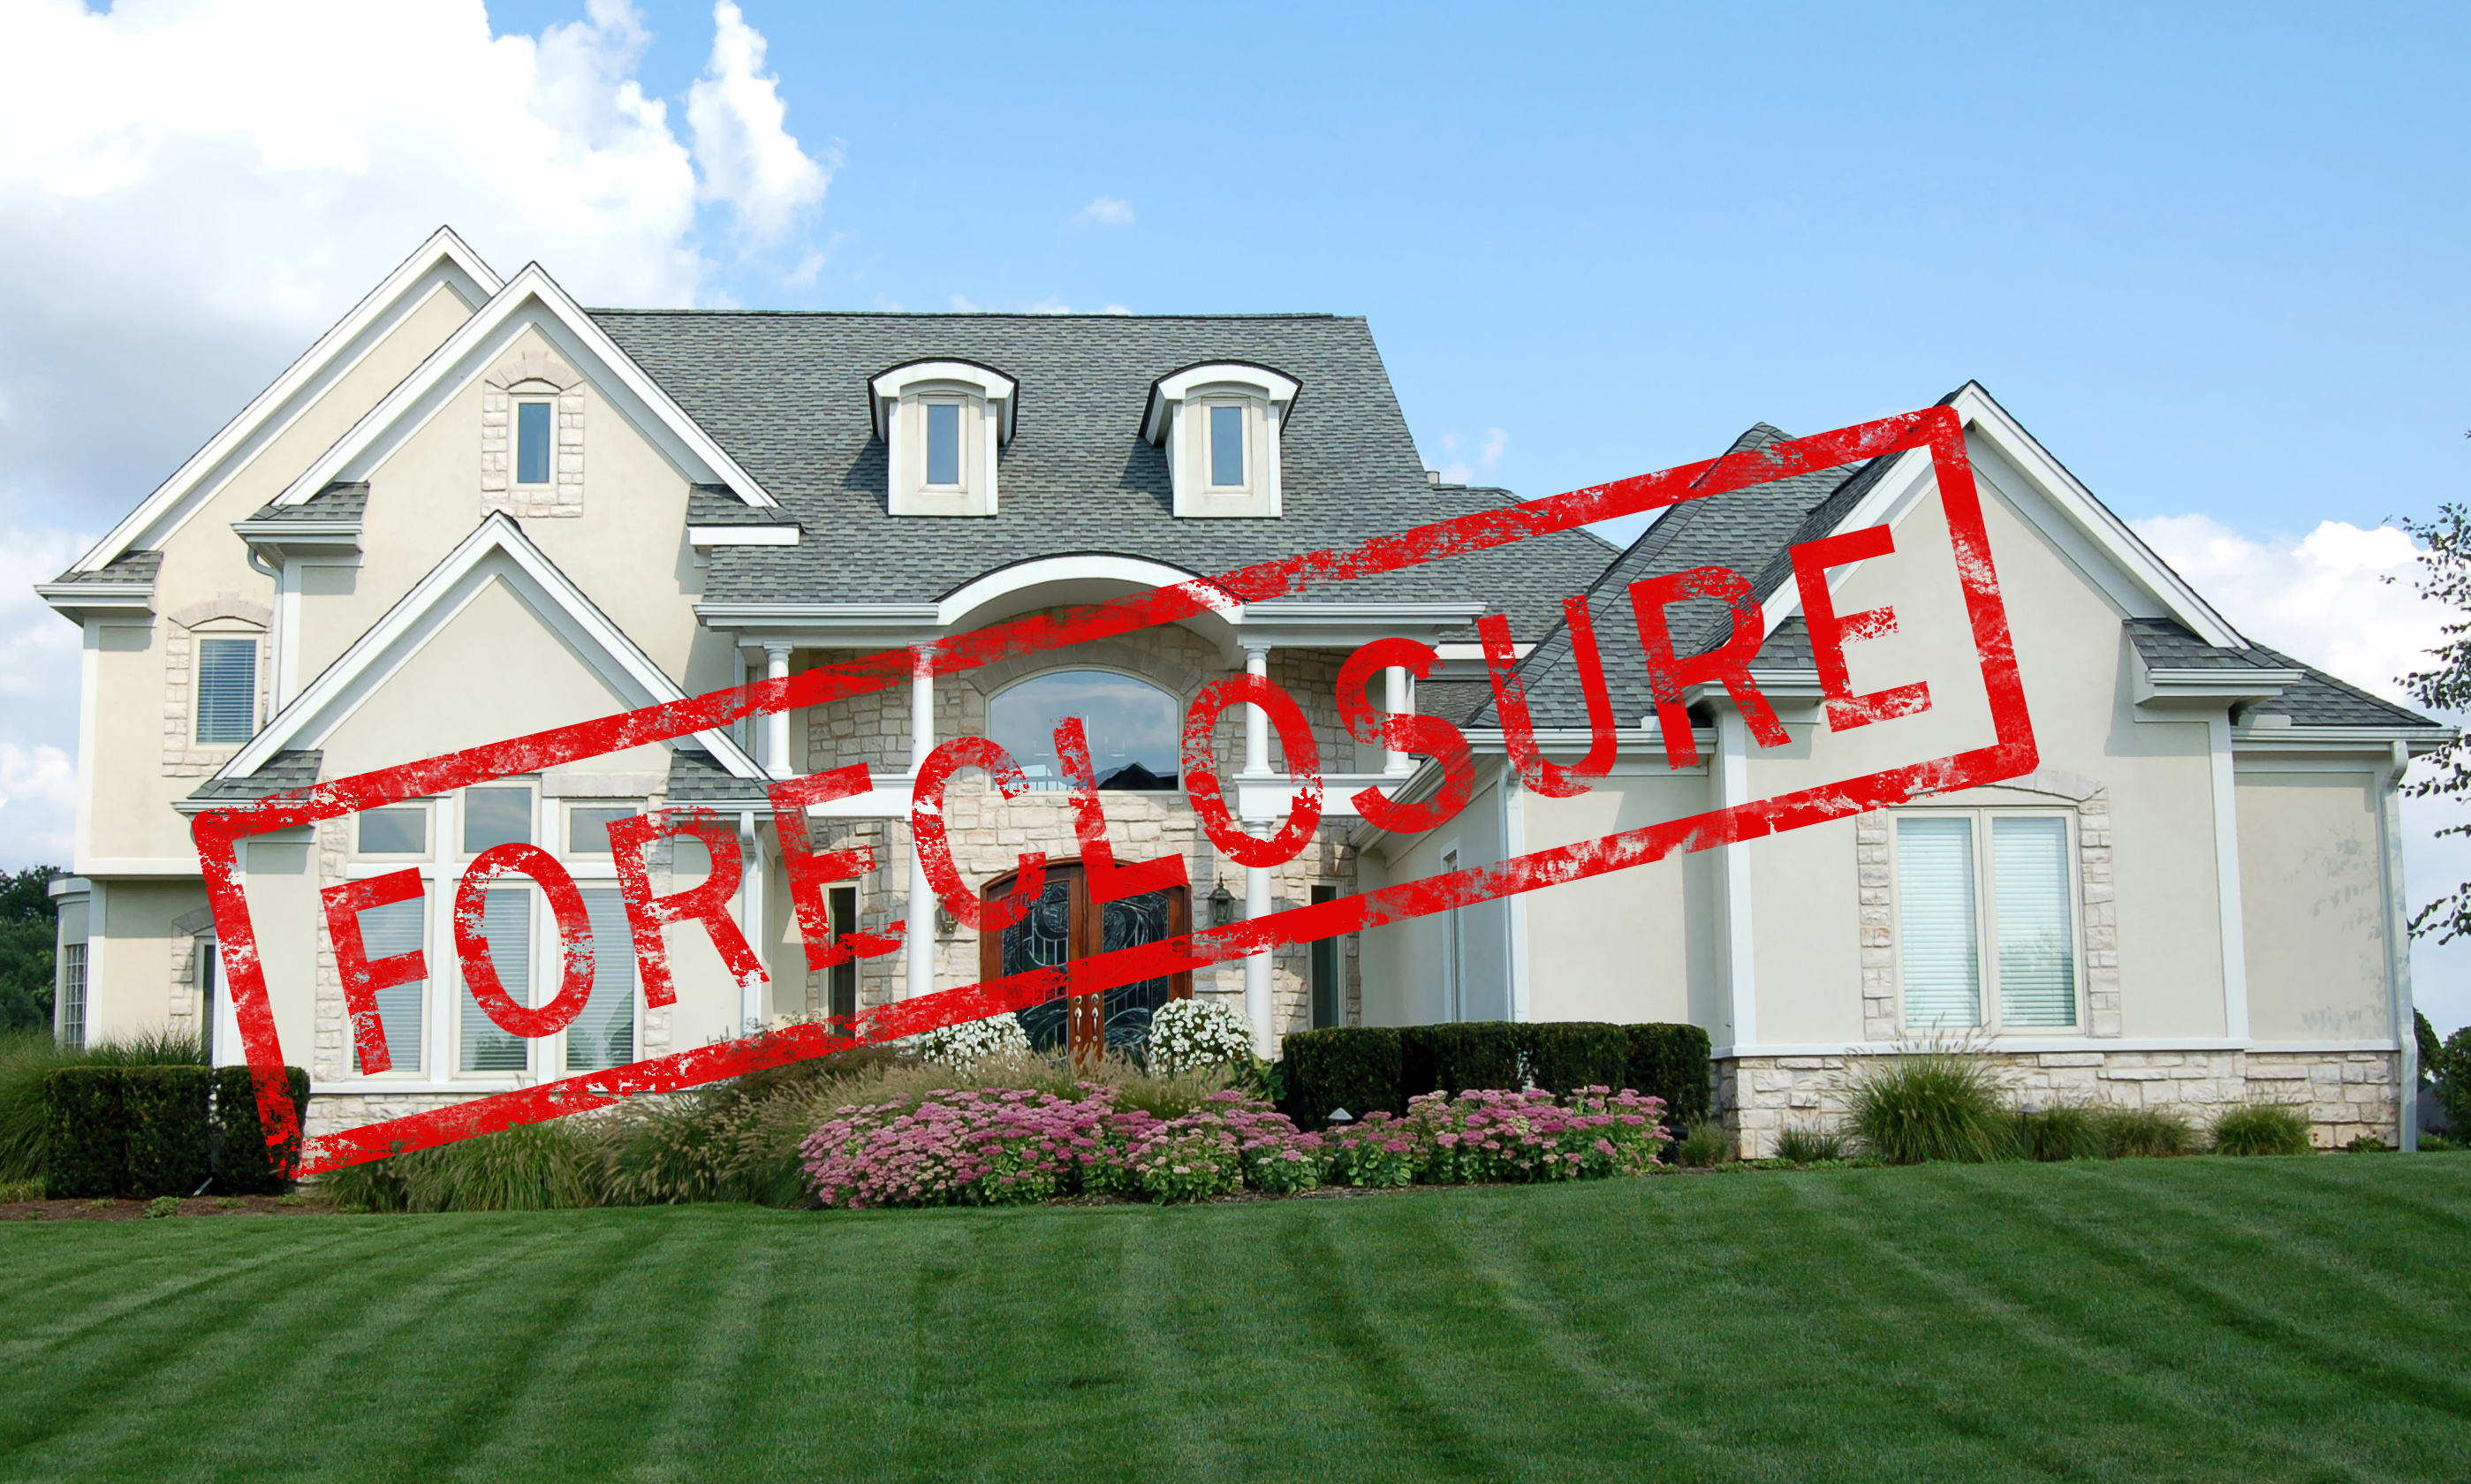 Call Michael Smith Appraisals, Inc when you need appraisals on Floyd foreclosures